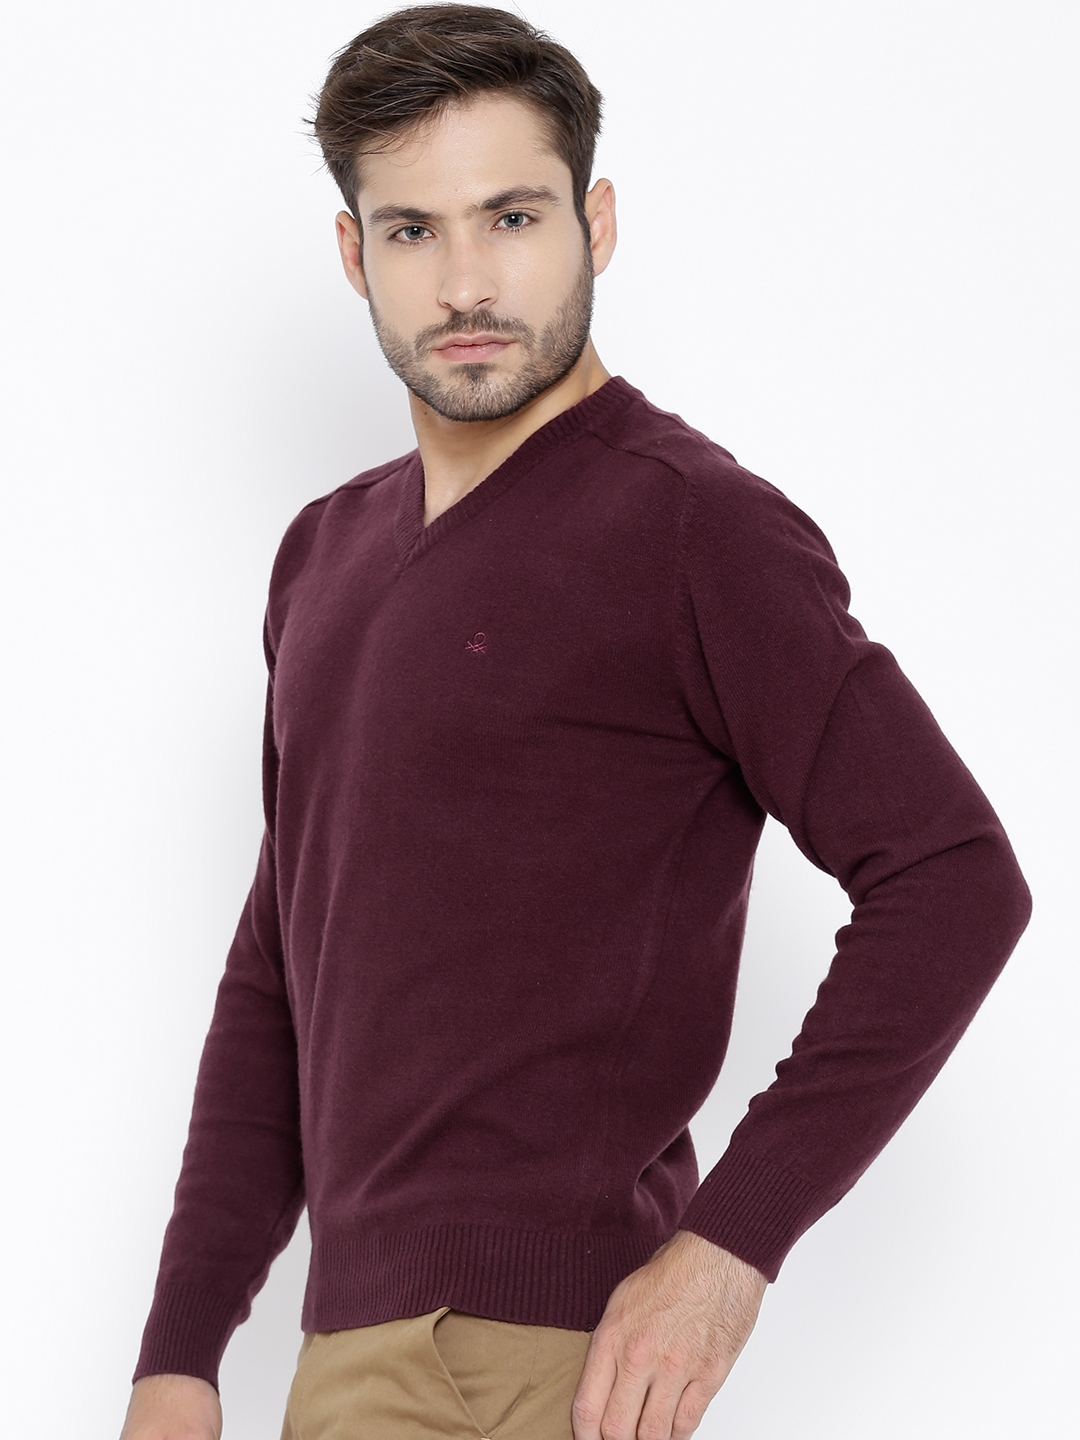 757104829f Buy United Colors Of Benetton Wine Coloured Lambswool Sweater ...